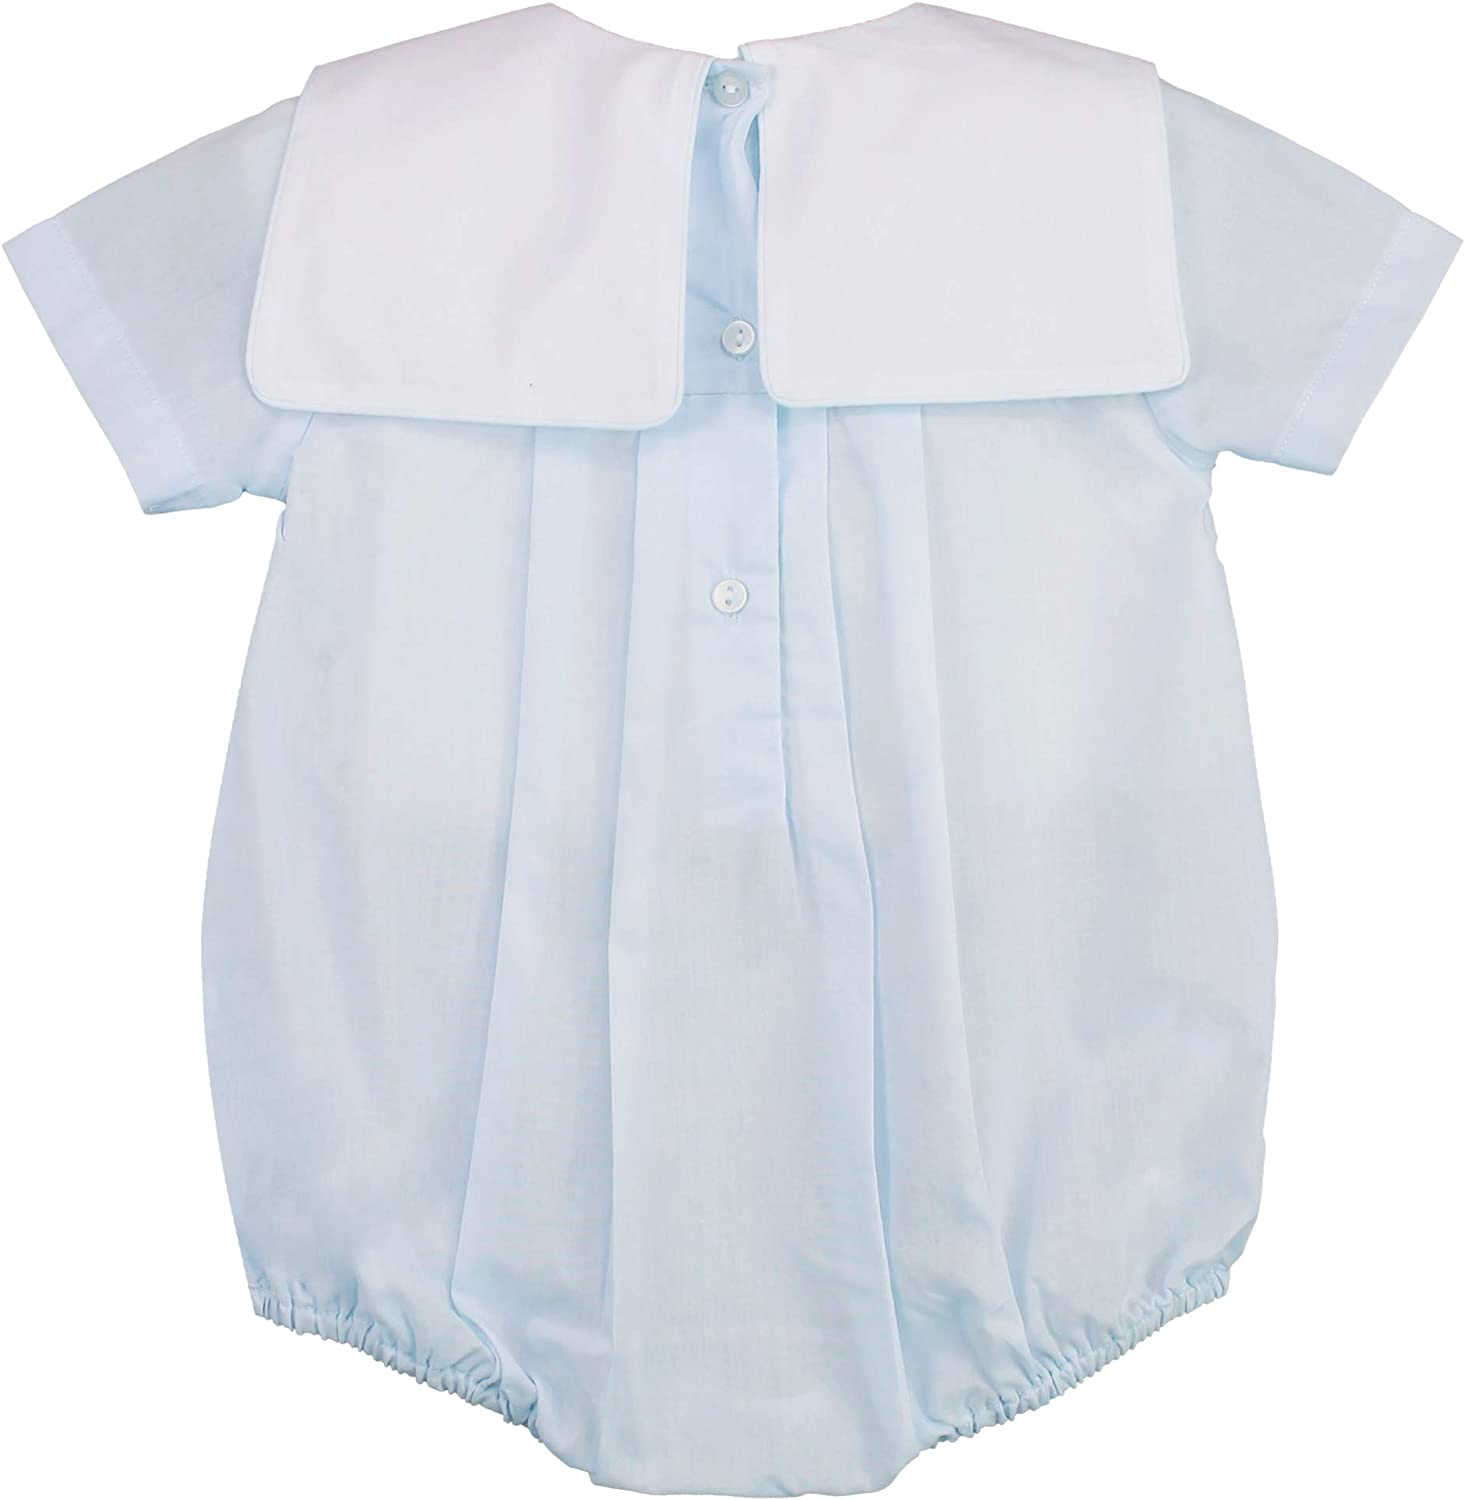 Details about  /Petit Ami Romper /& Hat 5723 Sq Collar w Embroidery Train Blue Wht 3 Month #10233